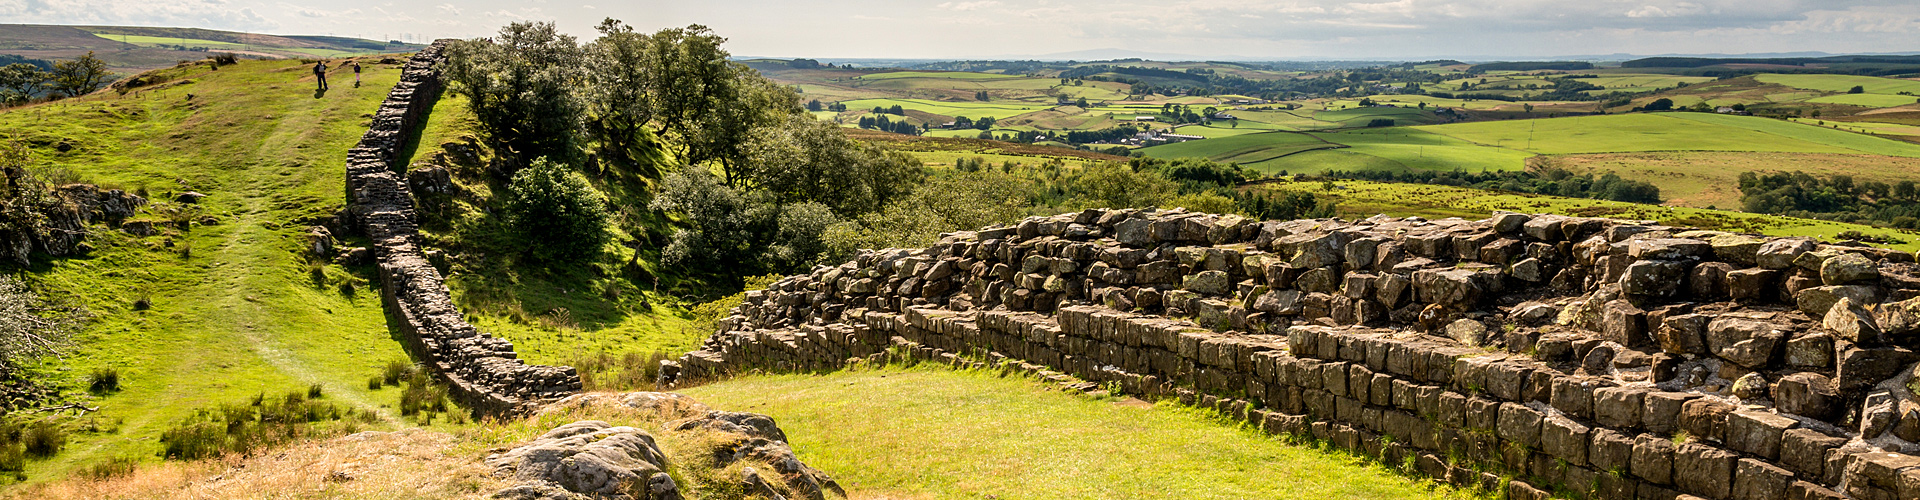 Hadrian S Wall Self Guided Hiking Tour In England